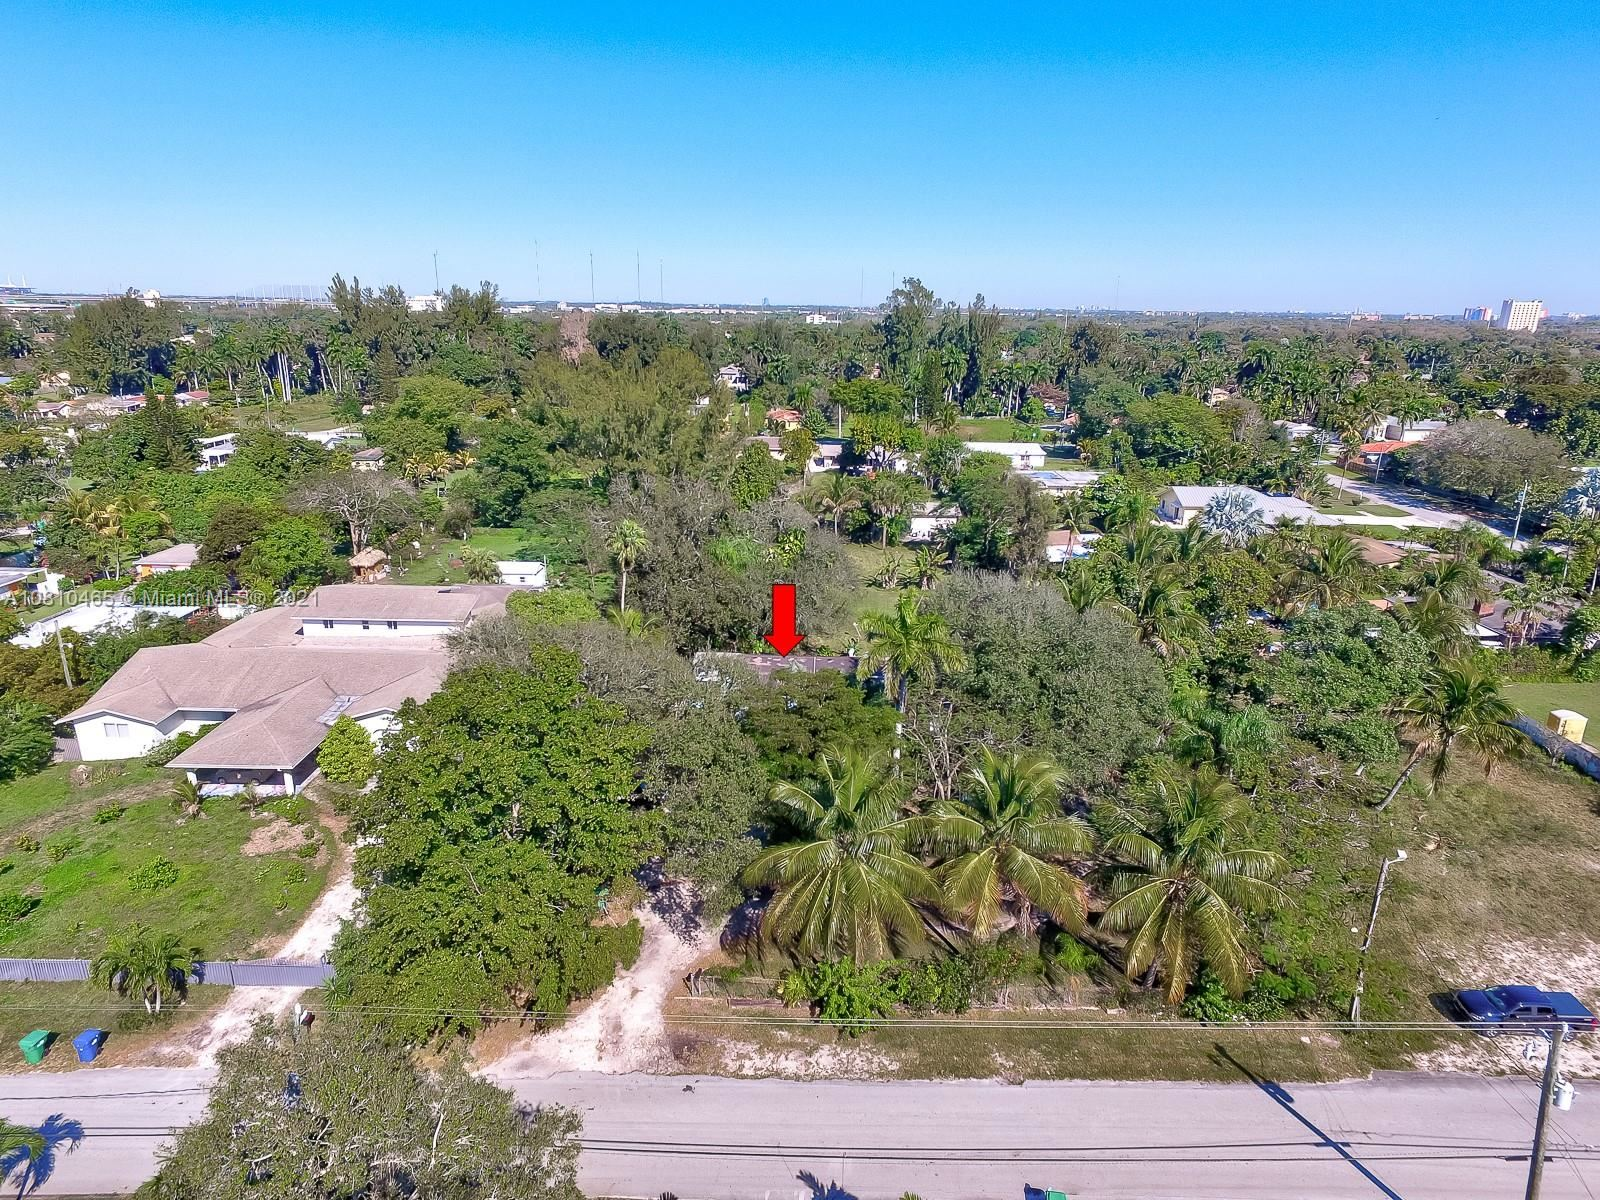 151 NE 154TH STREET, Miami, FL 33162 - #: A10810465